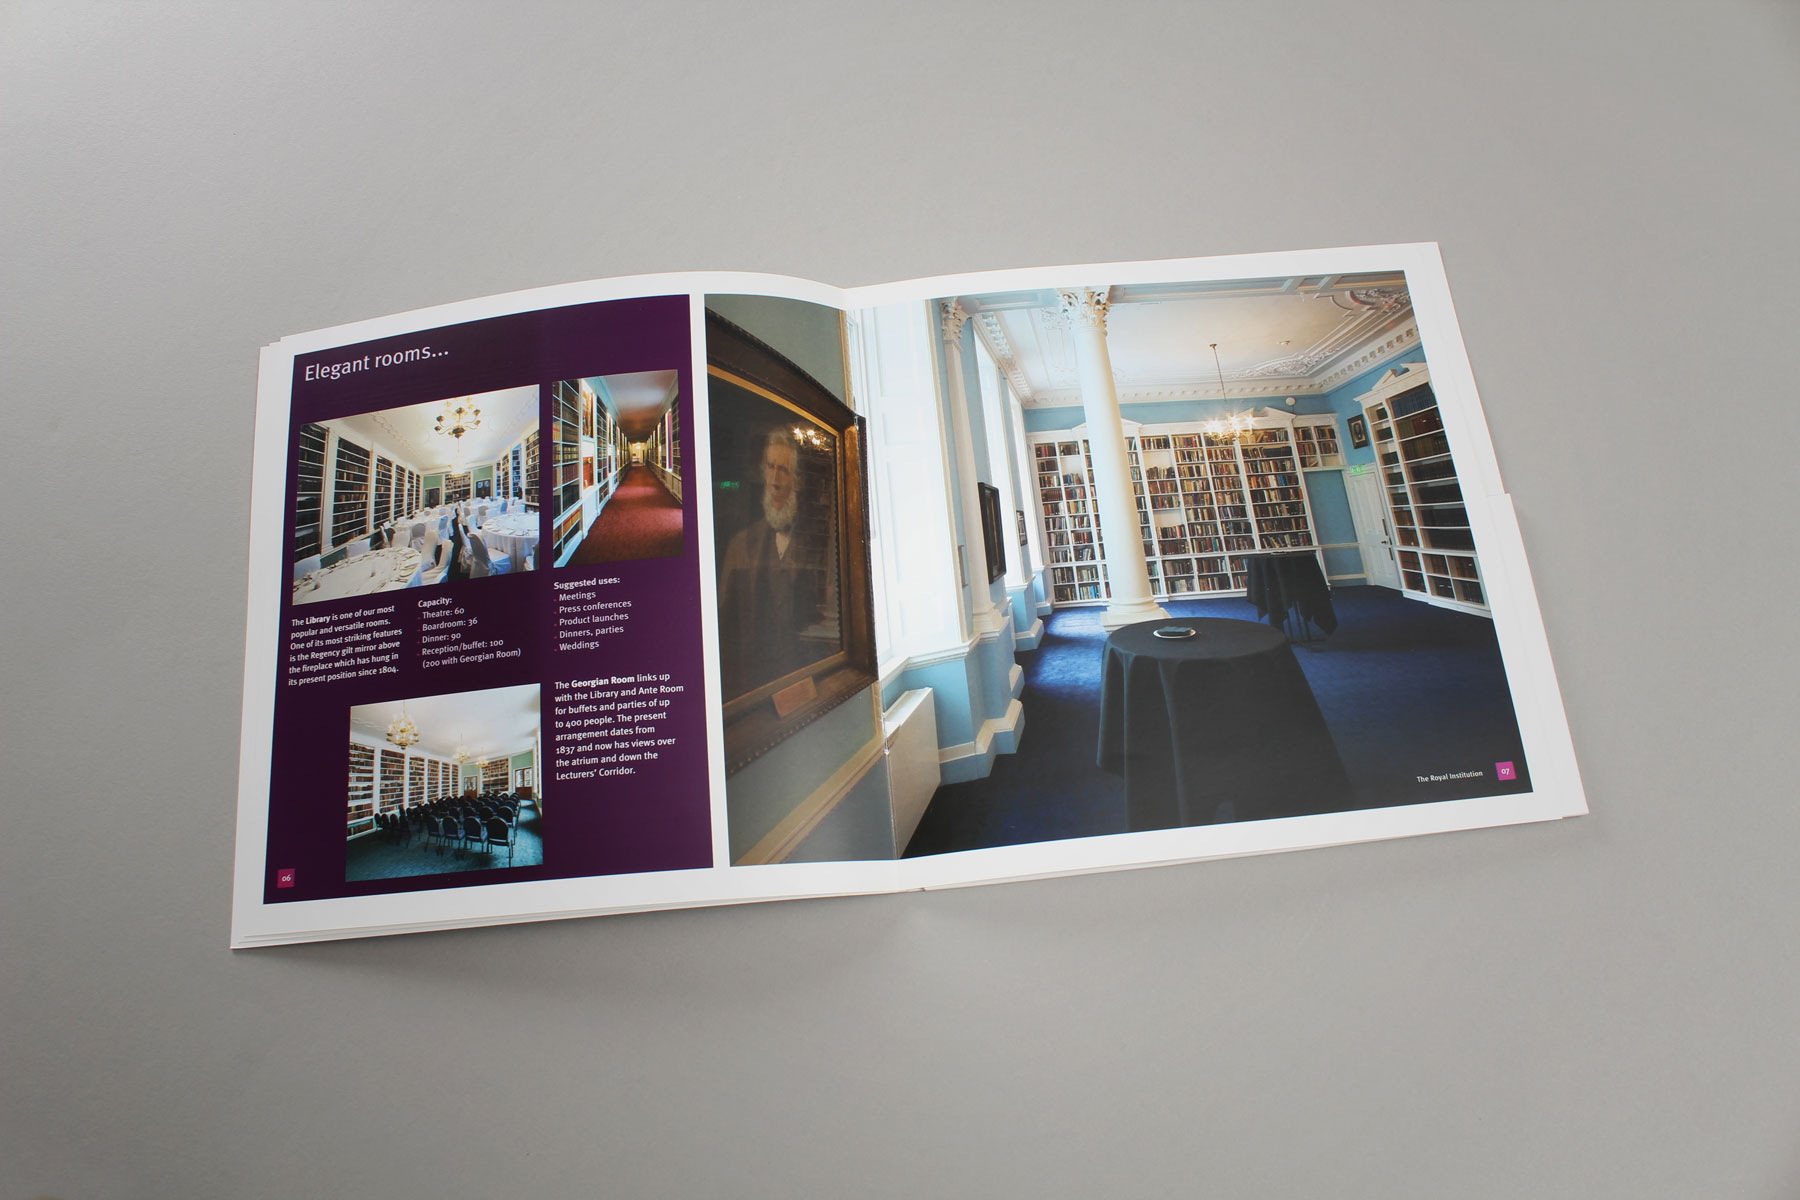 The communications were geared to raising awareness of the fantastic spaces within the institution.